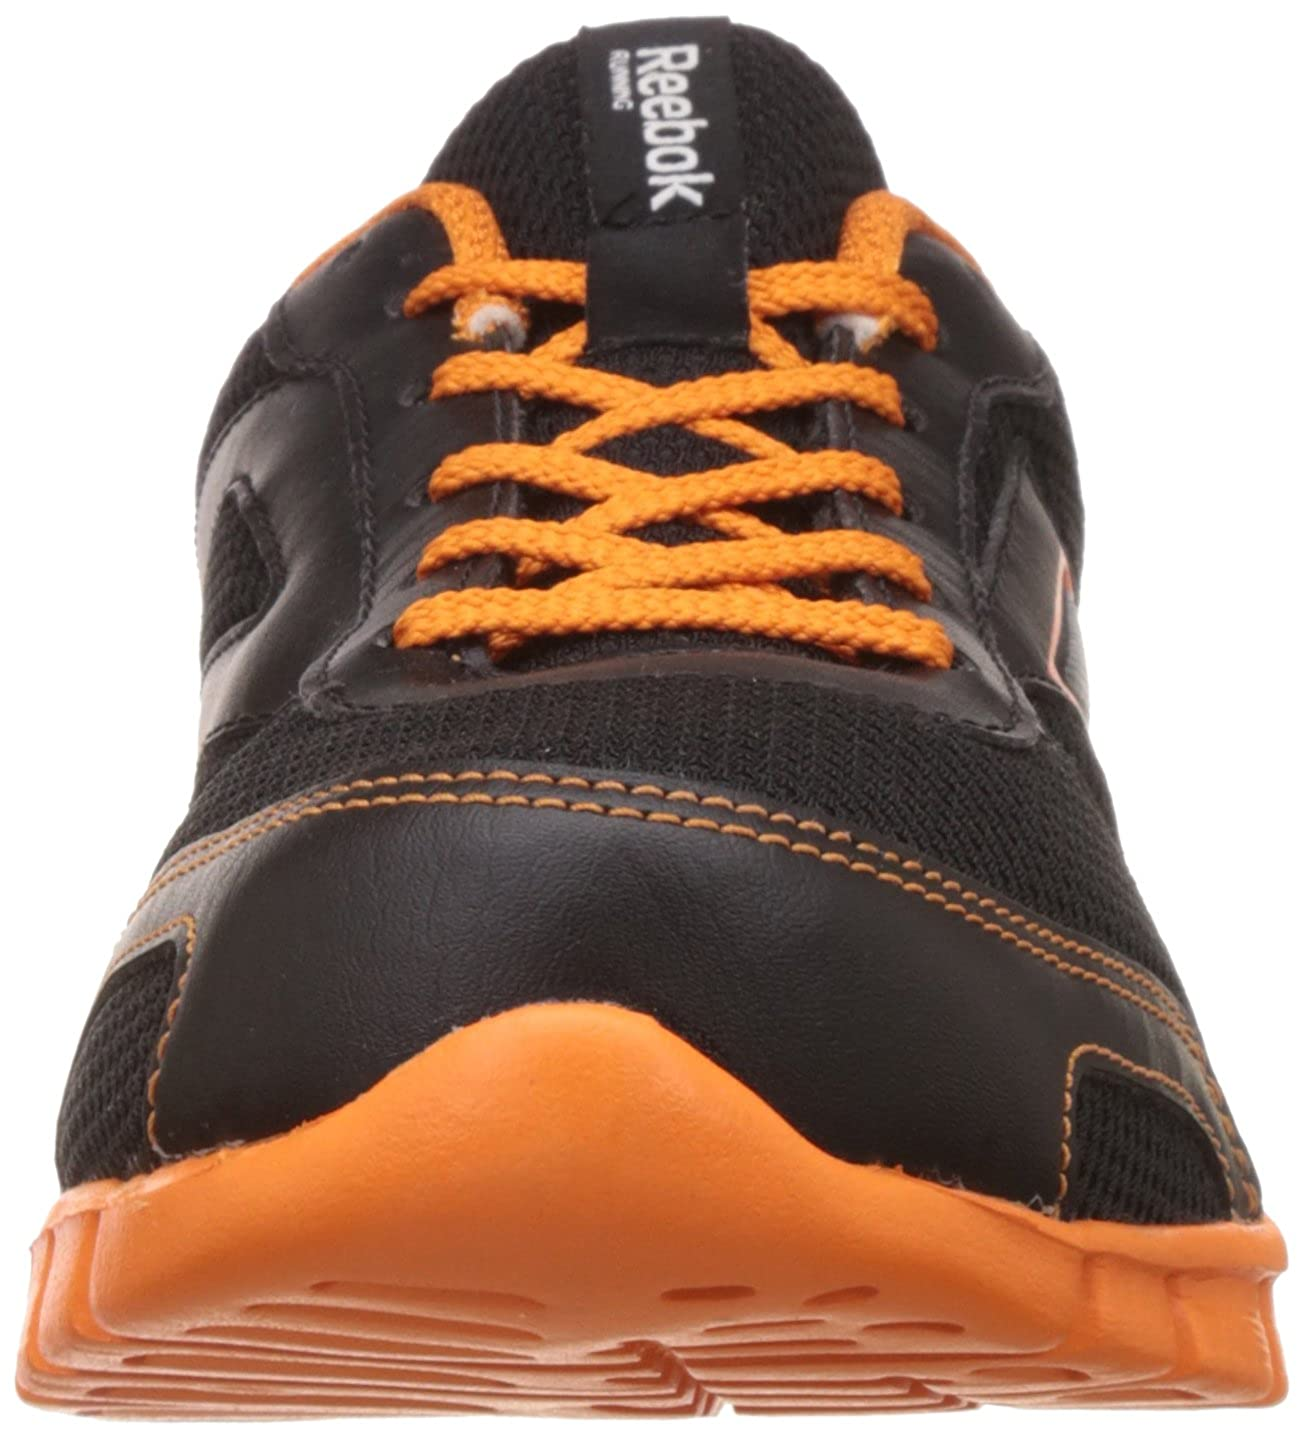 0a4375f60e8 Reebok Men s Ree Scape Run Running Shoes  Buy Online at Low Prices in India  - Amazon.in